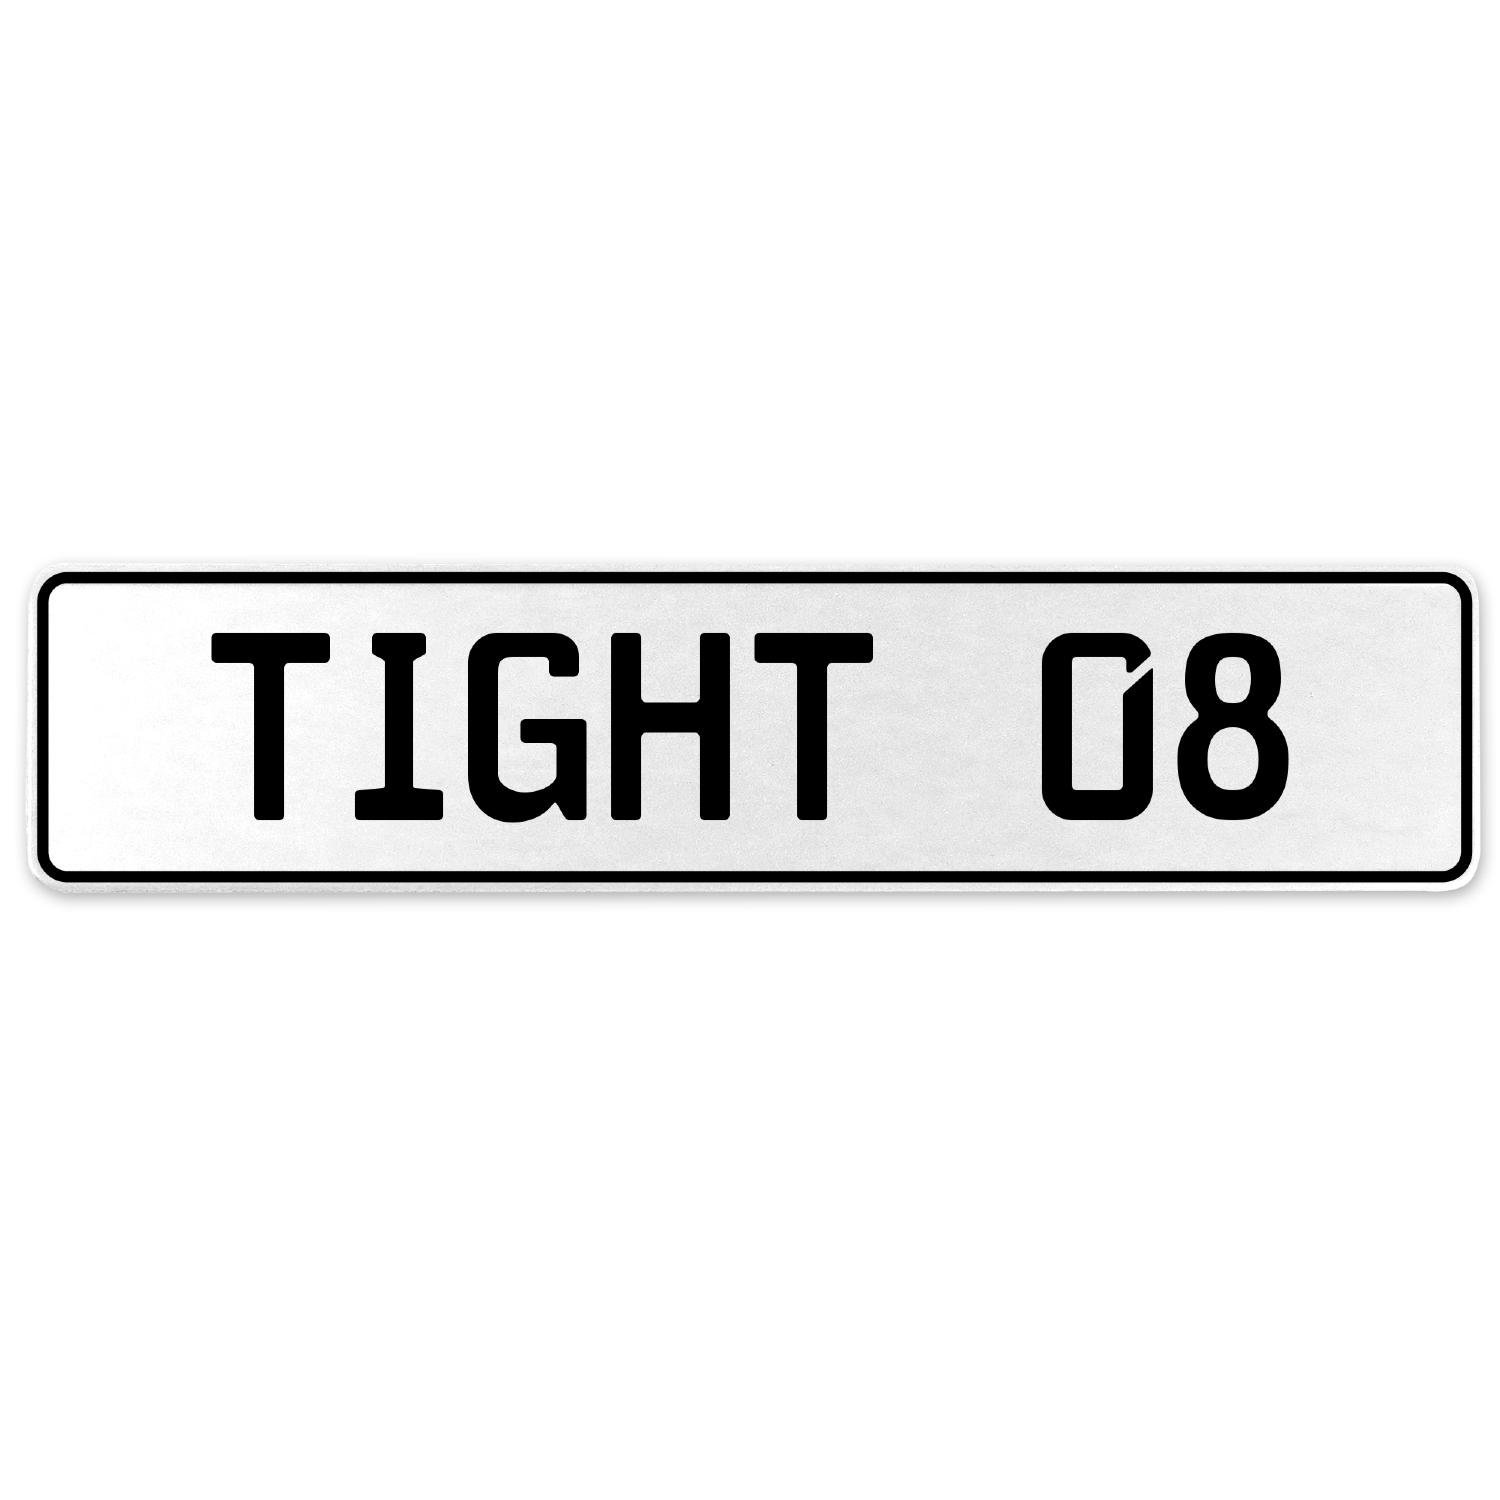 Vintage Parts 554704 Tight 08 White Stamped Aluminum European License Plate